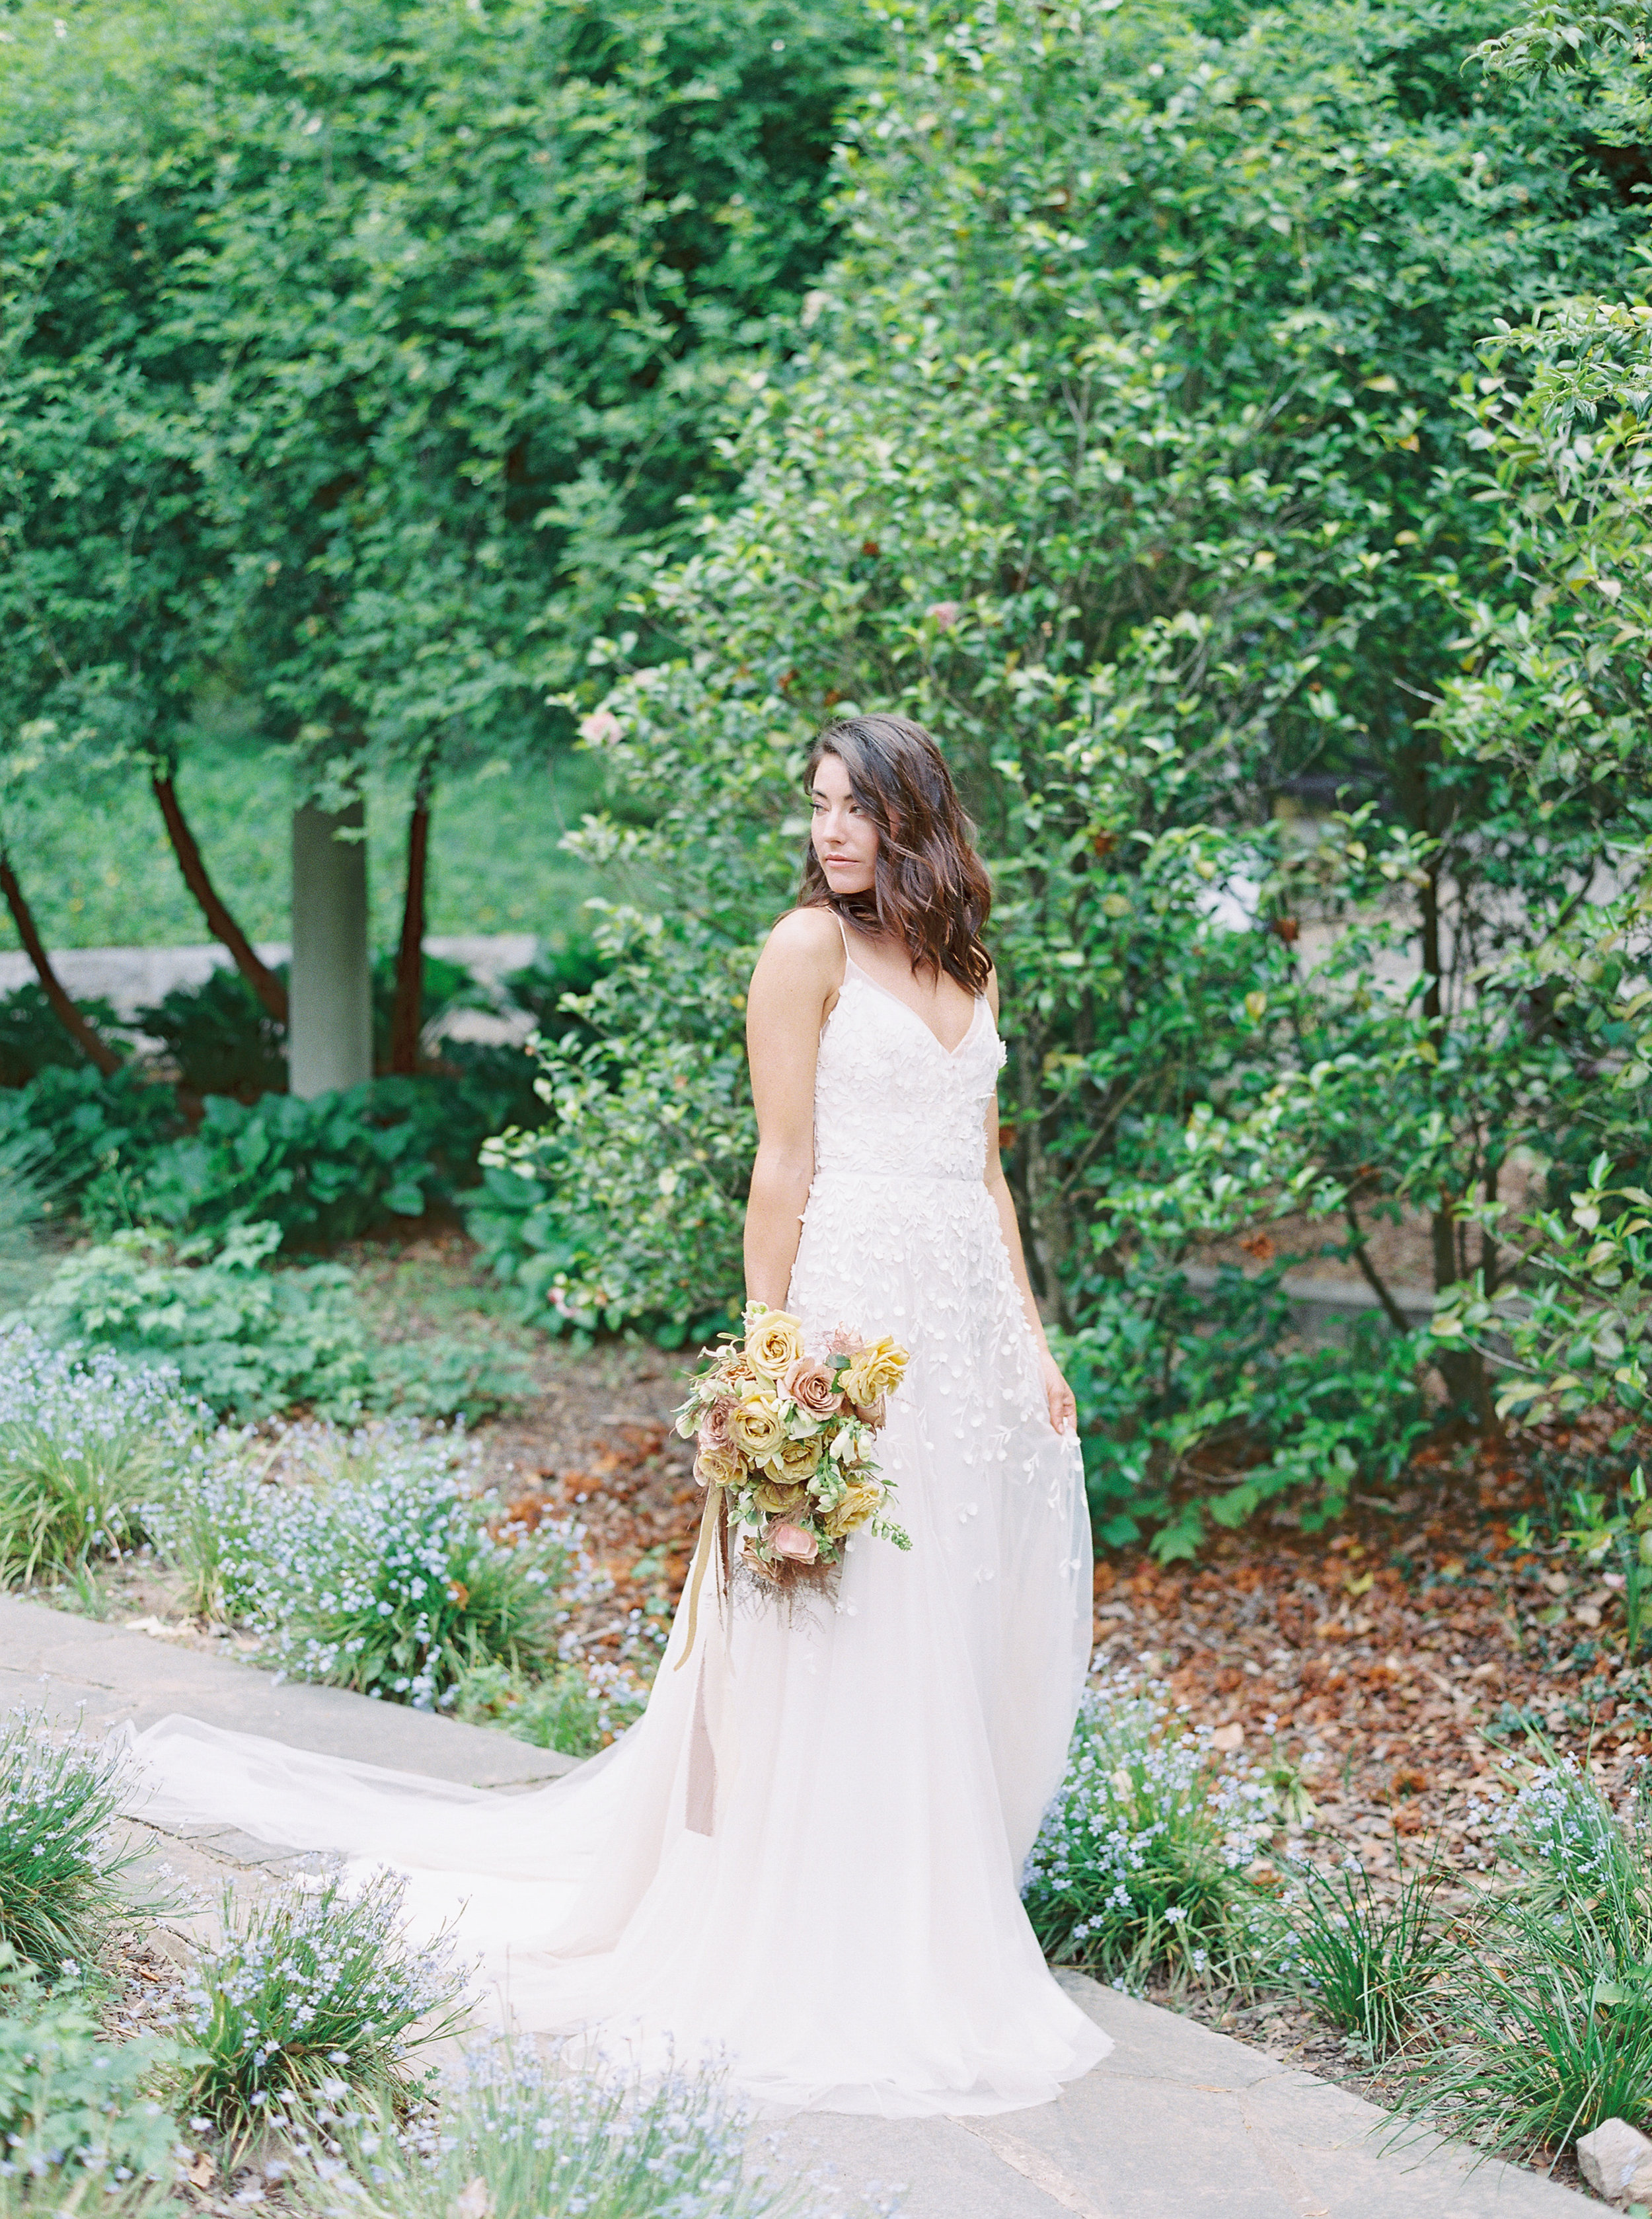 Cator-woolford-gardens-wedding-photos-atlanta-film-wedding-photographer--6.jpg